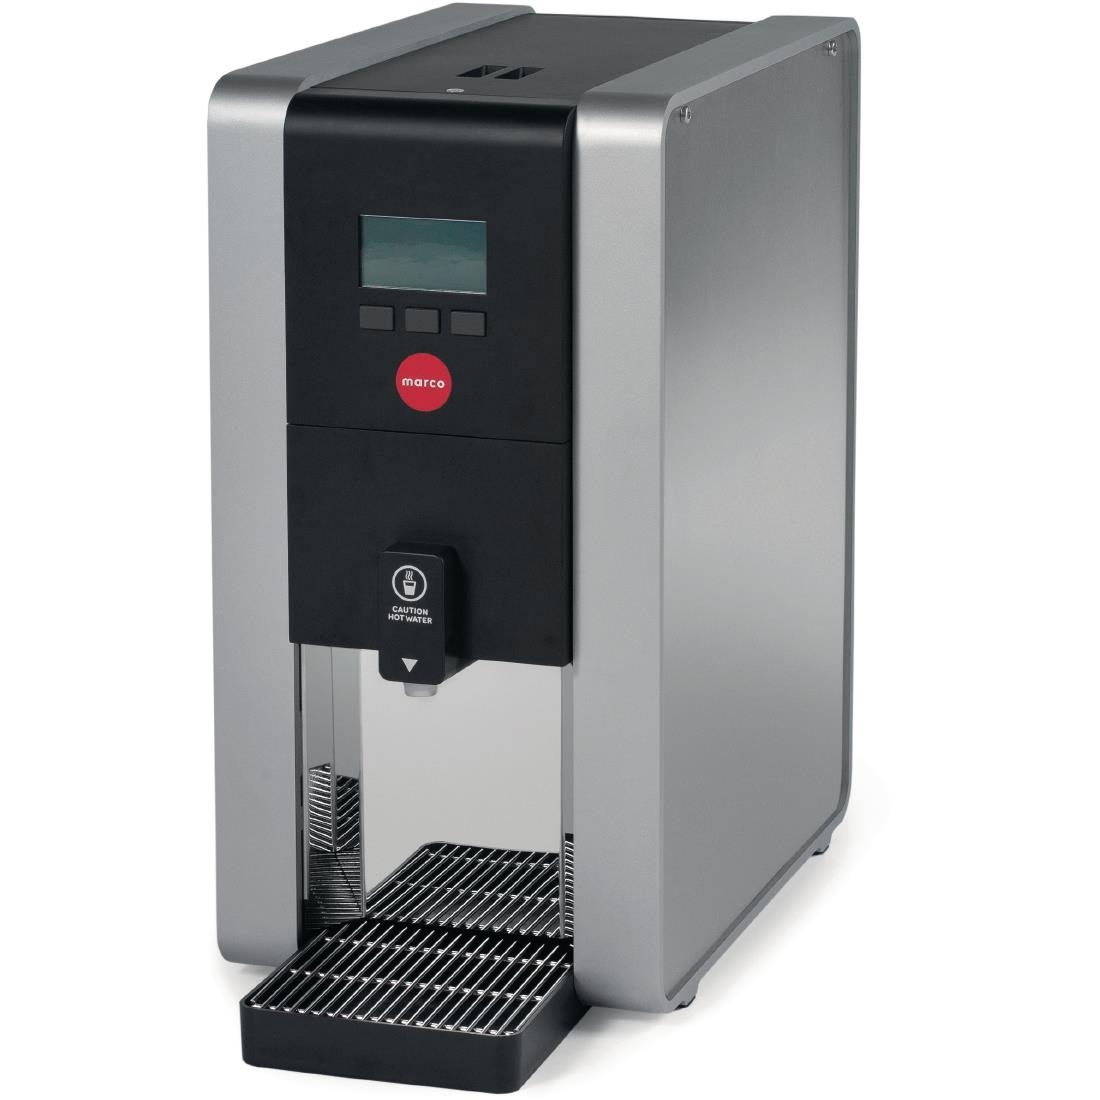 Image of Marco 3Ltr Auto-Fill Push Button Multi-Temperature Water Boiler MIX PB3